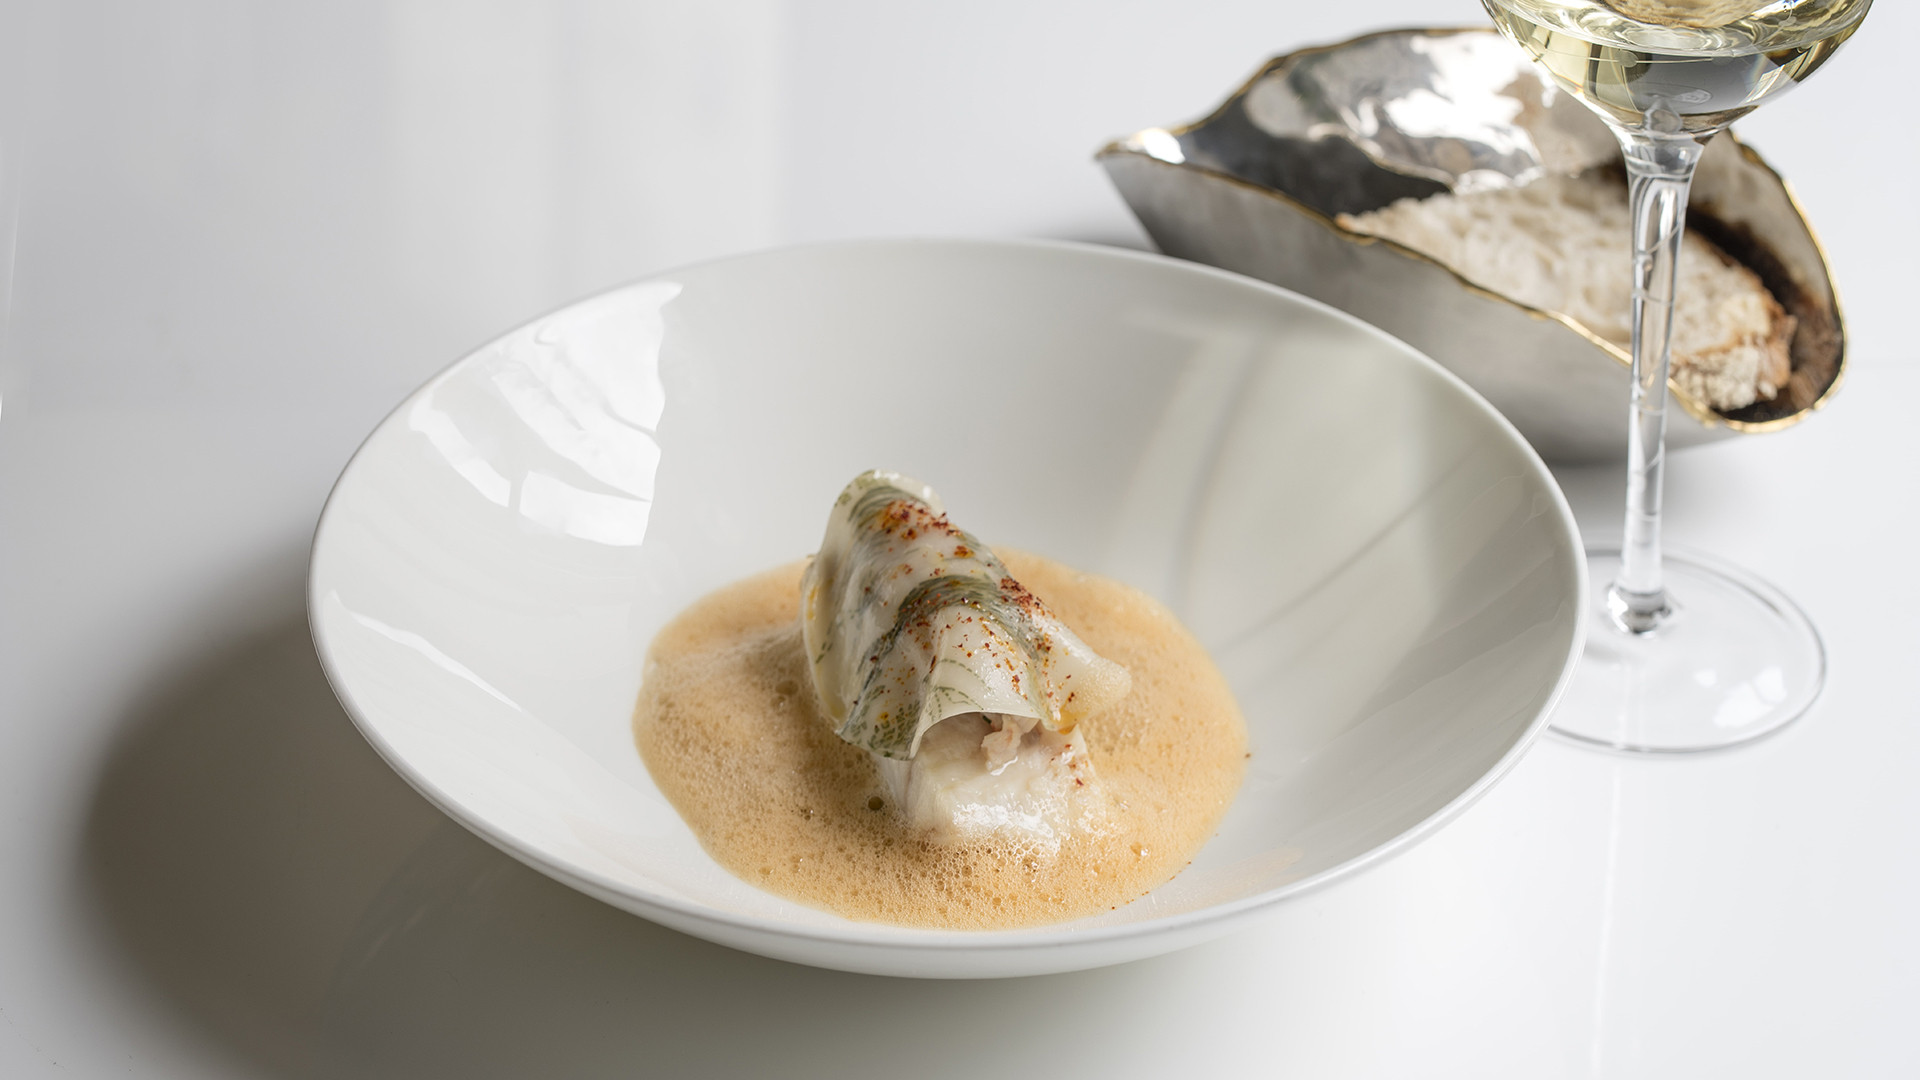 Braised turbot, Chateau Chalon sauce with native-lobster ravioli from Roux at the Landau